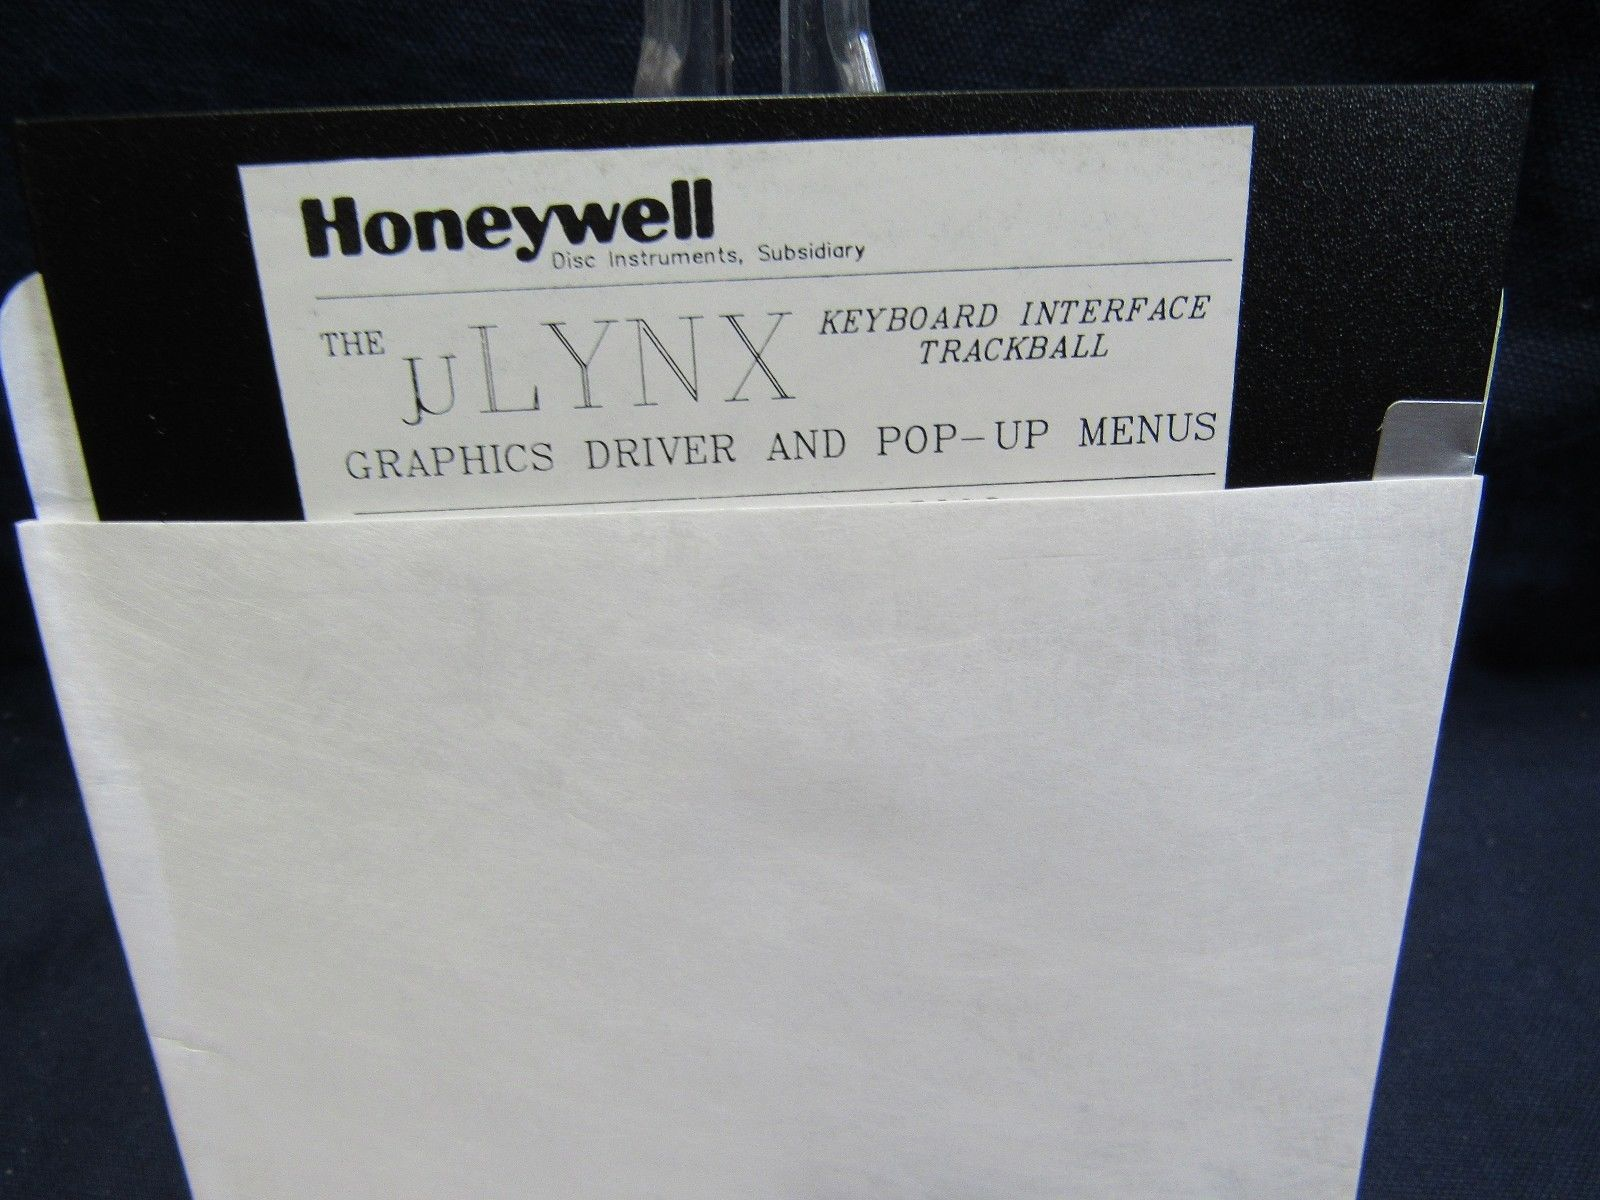 Honeywell uLYNX User Guide & Software Graphics Driver Pop-up Menus for Trackball